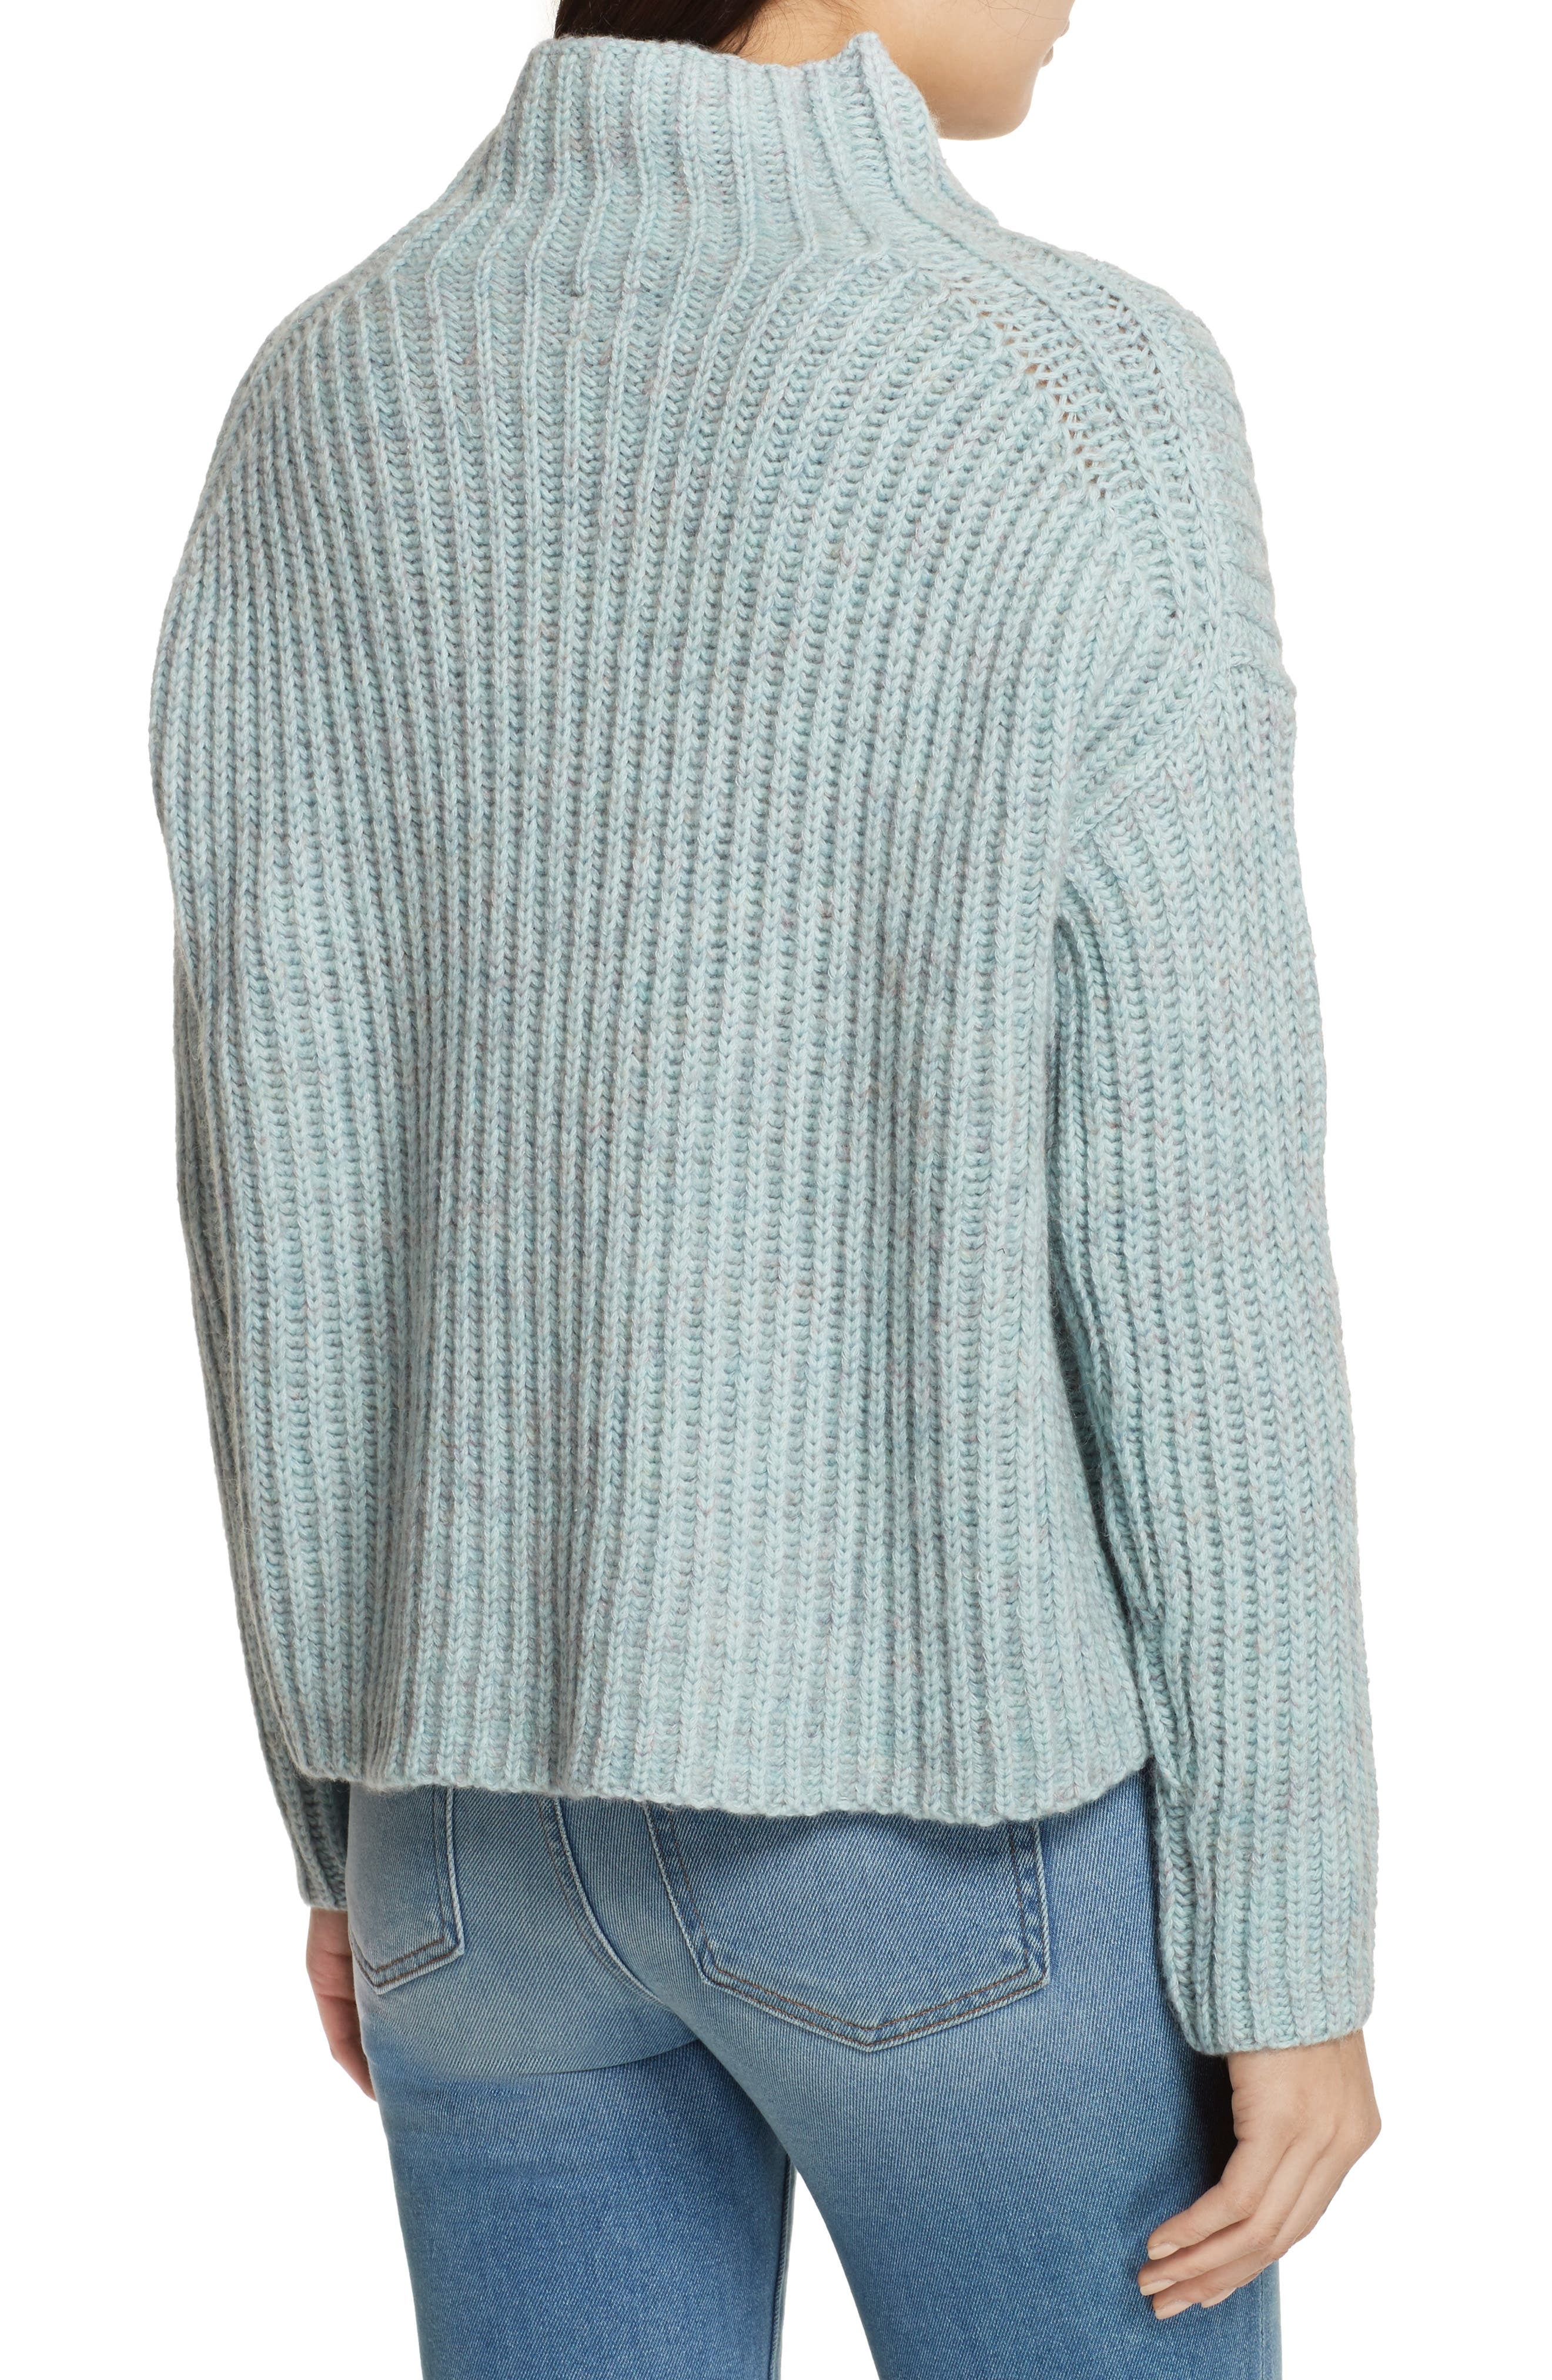 Ribbed Turtleneck Sweater,                             Alternate thumbnail 2, color,                             461